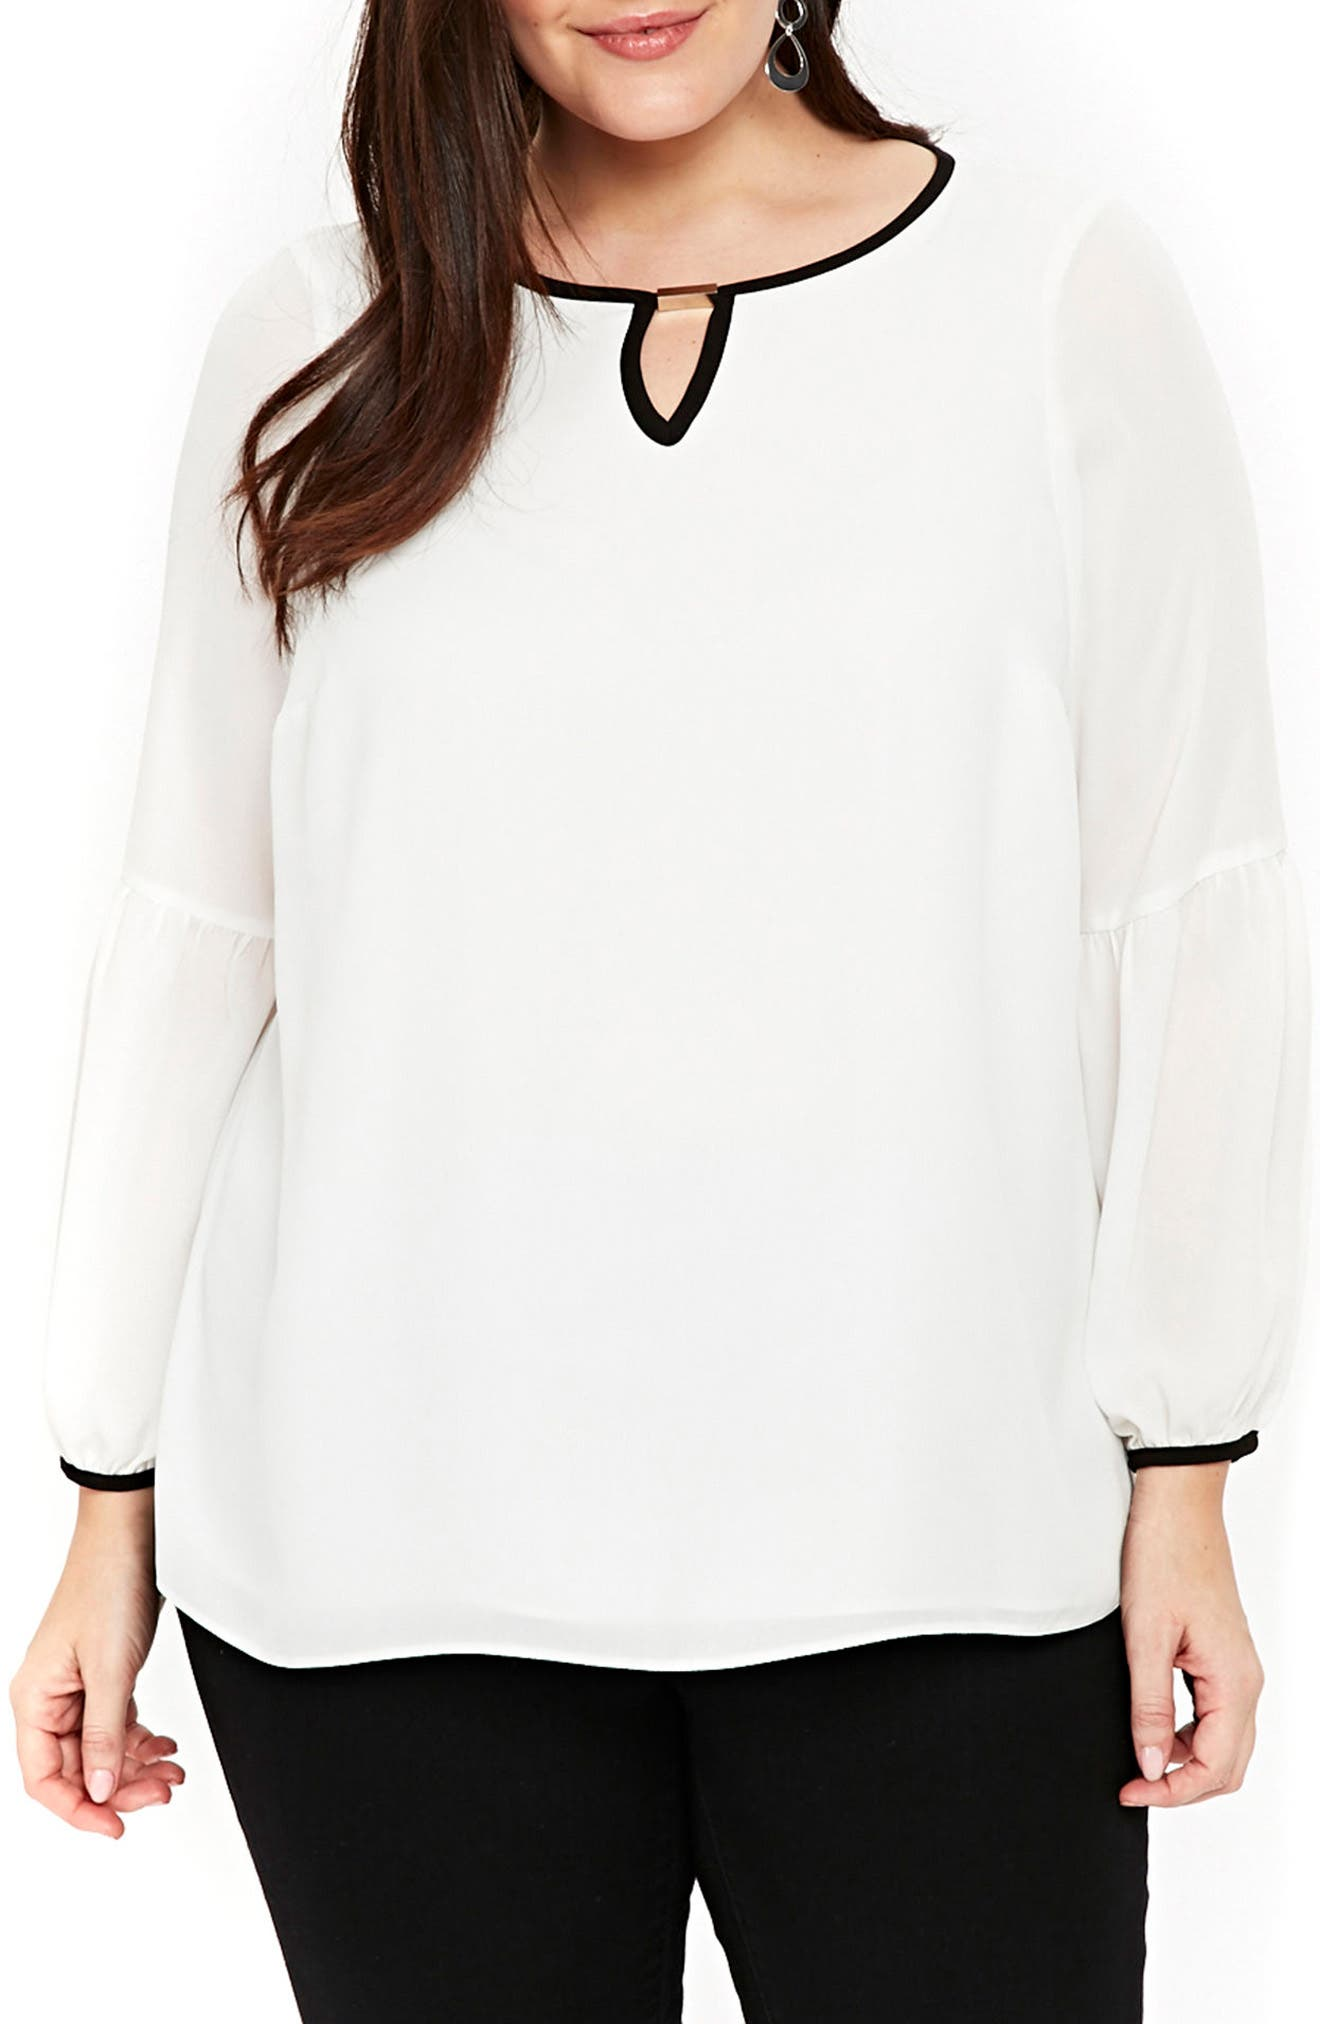 Alternate Image 1 Selected - Evans Contrast Trim Keyhole Top (Plus Size)